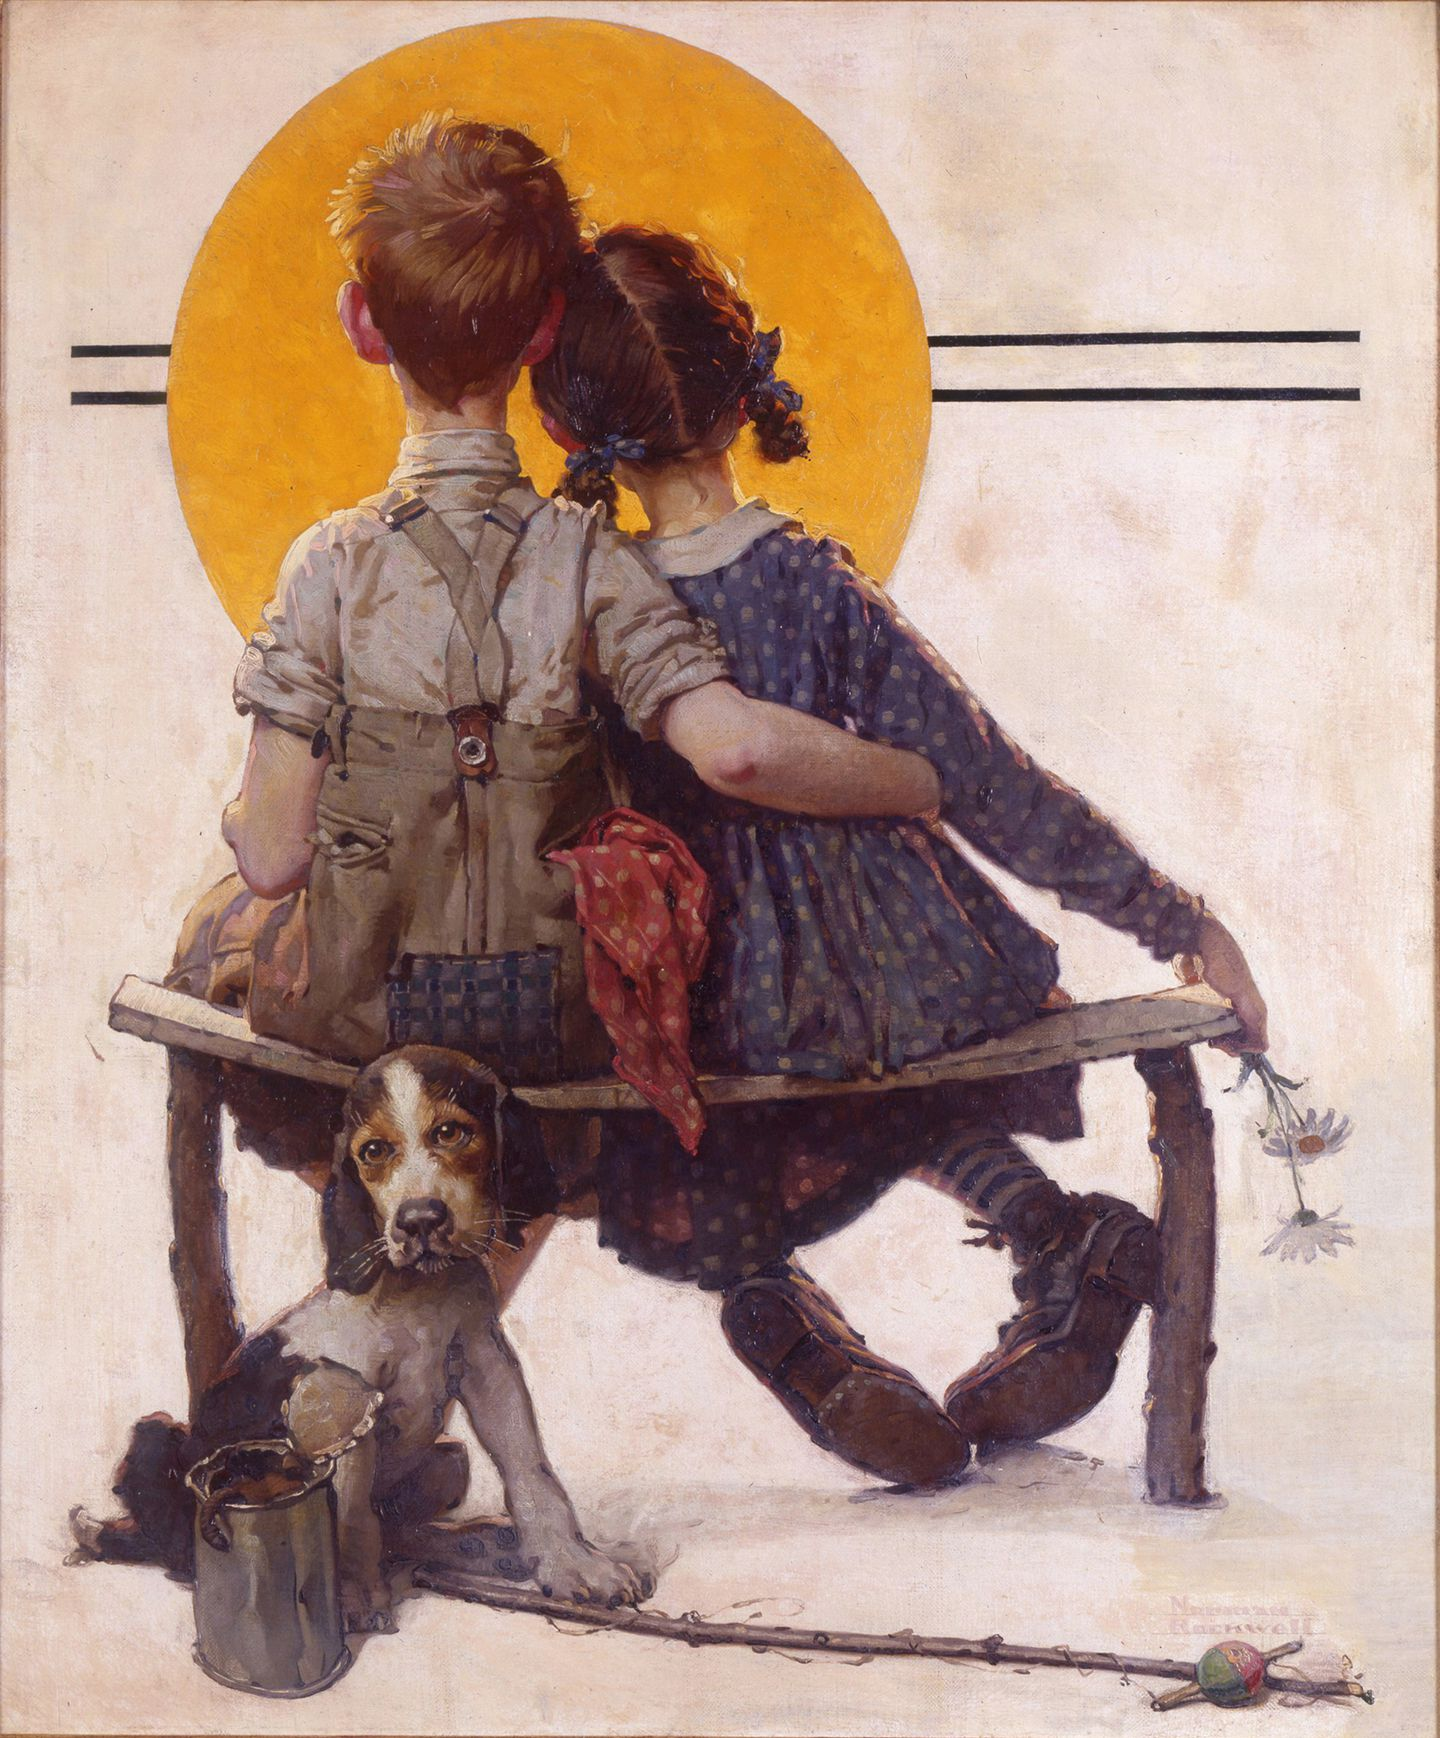 Norman Rockwell Museum acquires iconic painting - The Boston Globe